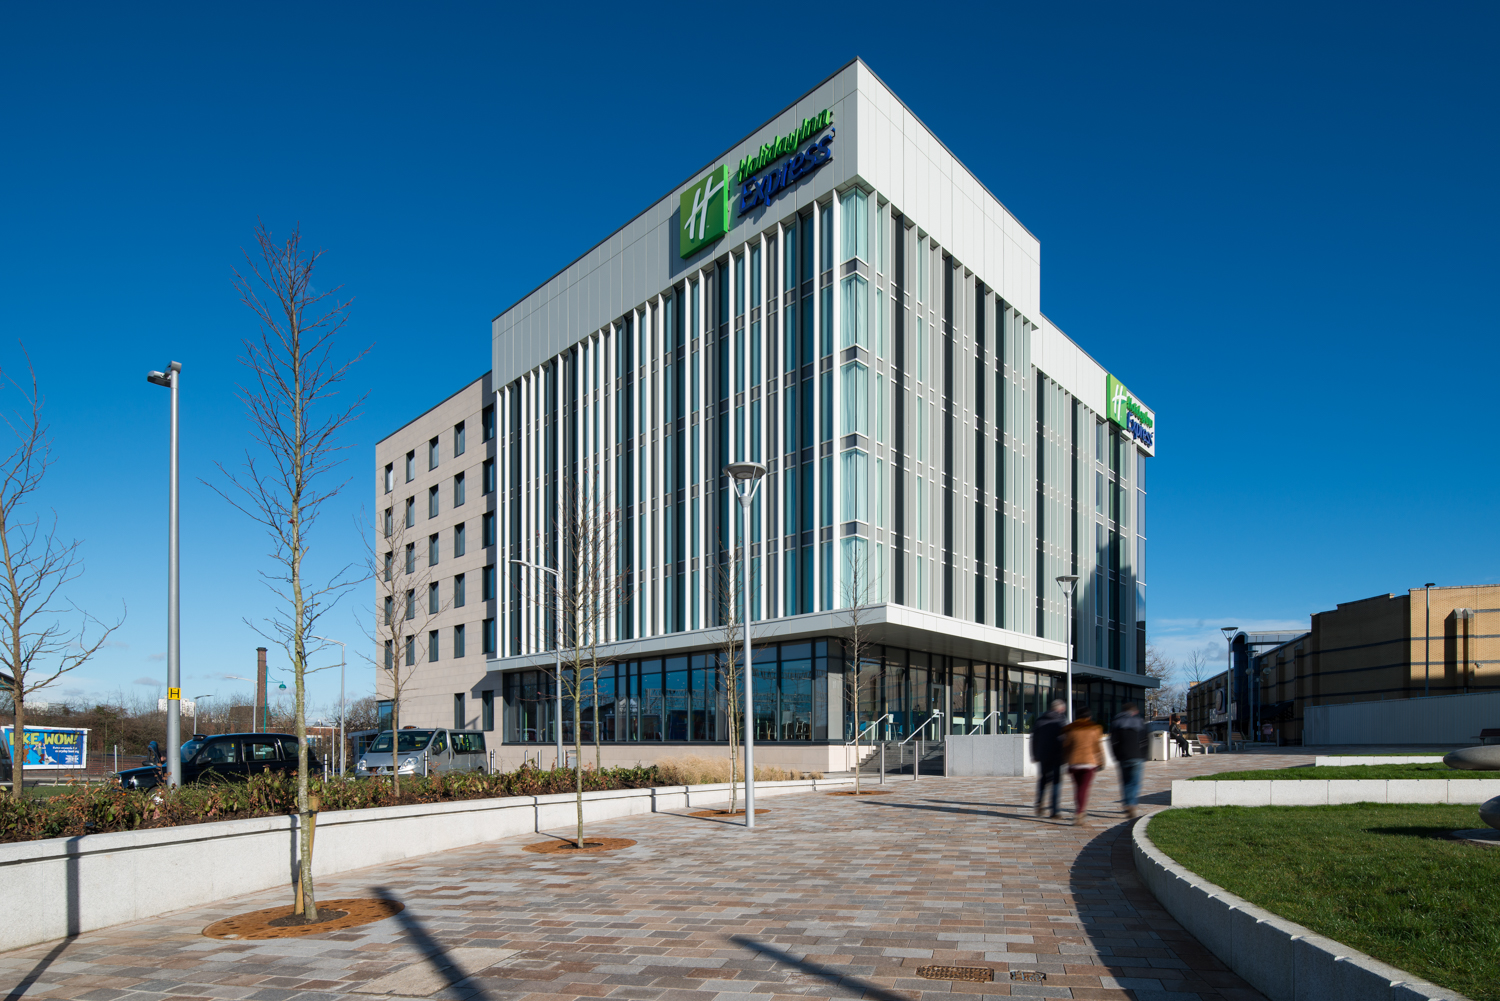 Stockport Exchange Holiday Inn Express